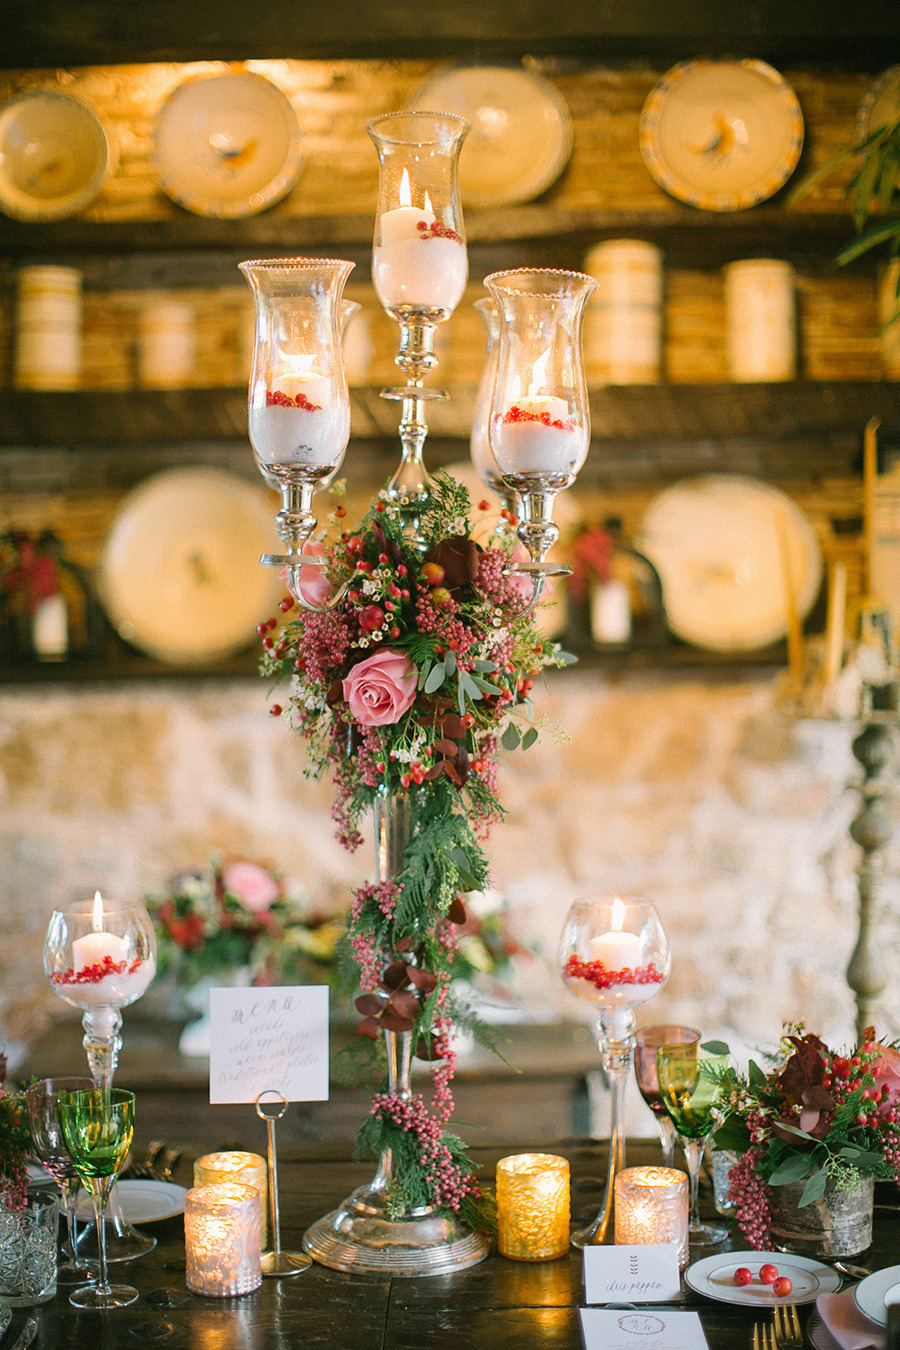 winter wedding centerpieces - Boho Chic Wedding Inspiration Shoot from Anna Roussos Photography - annaroussos.com | Read more : https://www.fabmood.com/boho-chic-wedding-inspiration-shoot-anna-roussos-photography